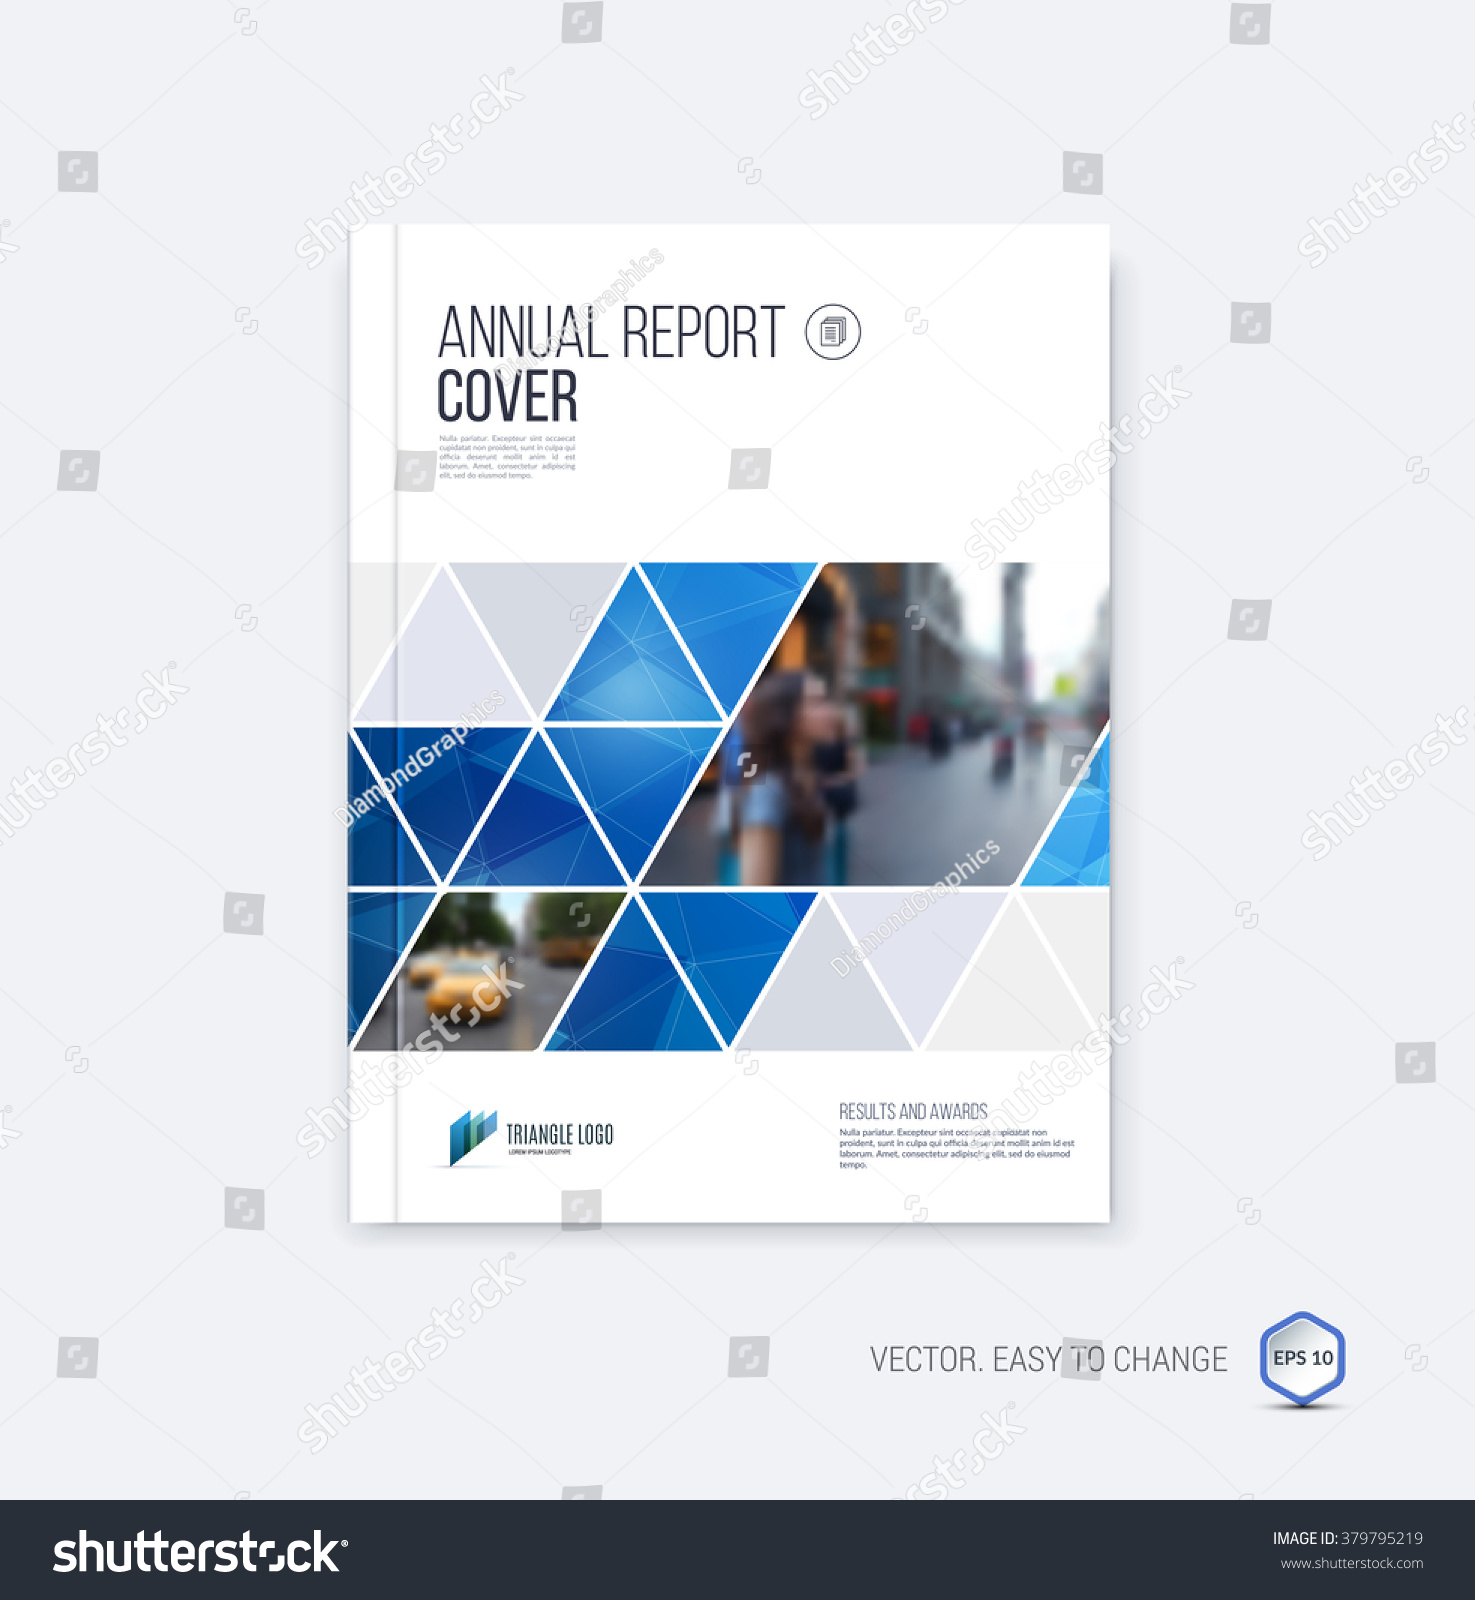 brochure template layout cover design annual stock vector brochure template layout cover design annual report magazine flyer or booklet in a4